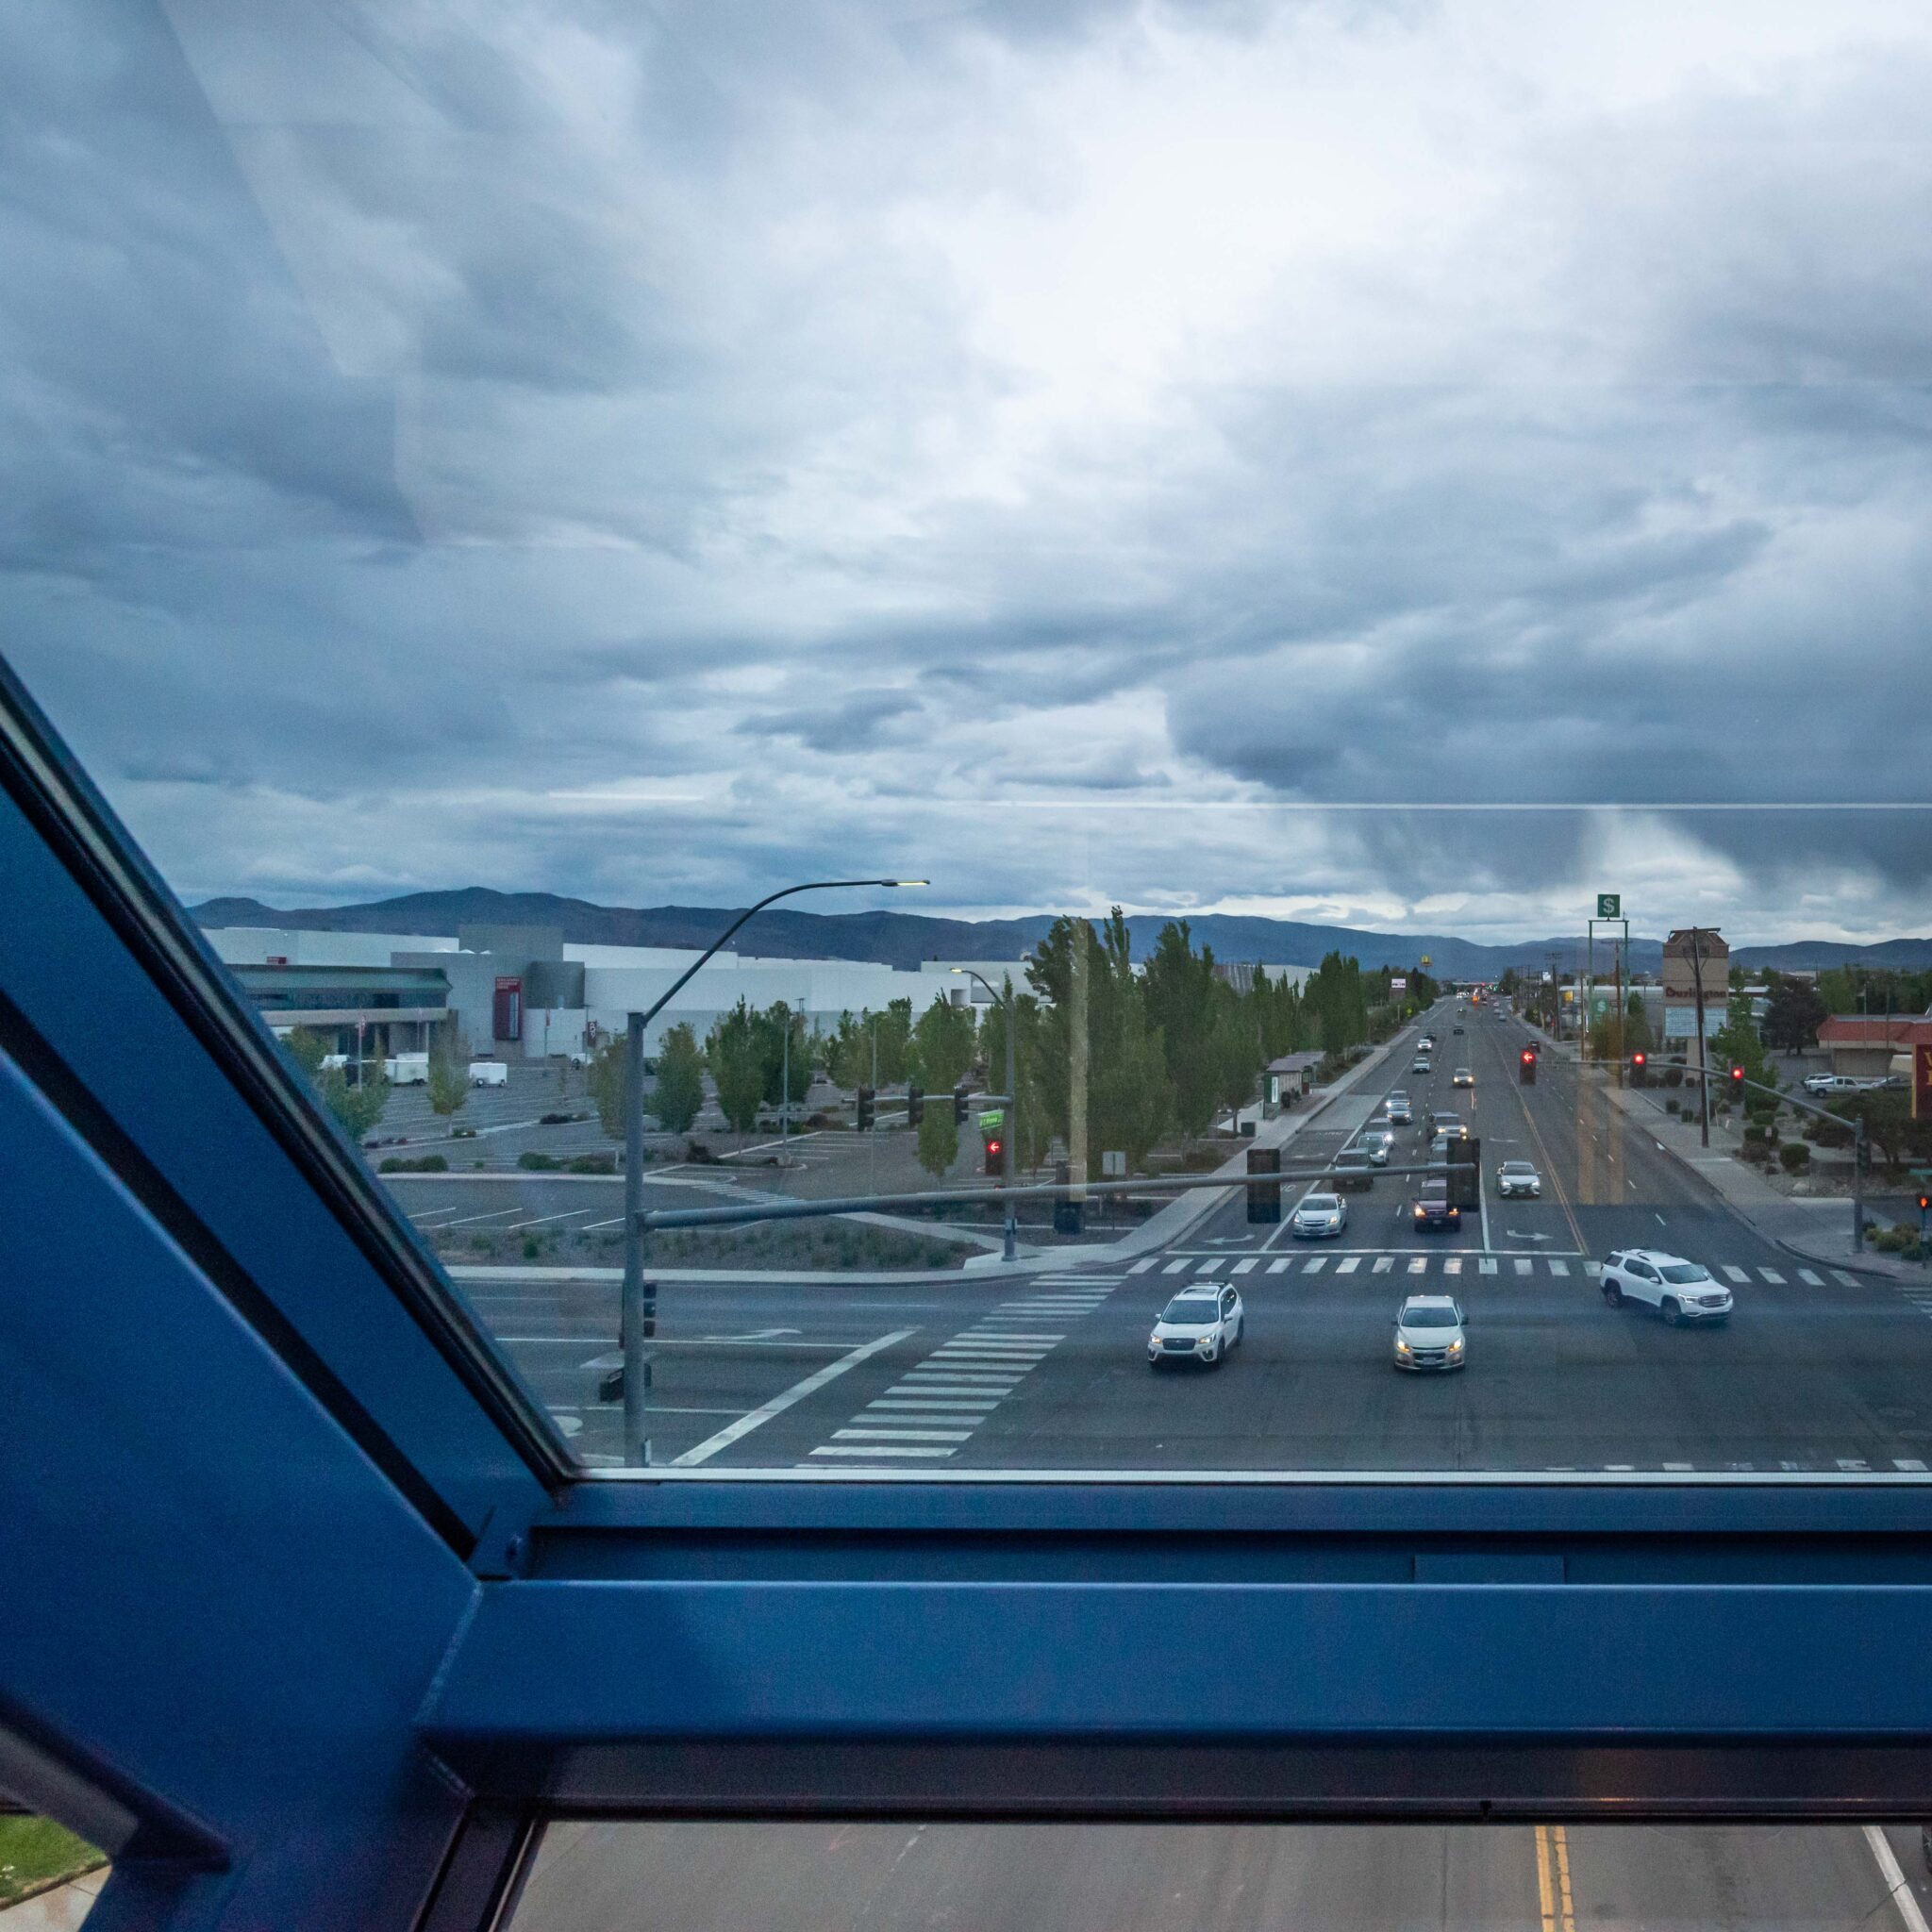 clouds, weather, reno, traffic, view, window, sad, blue, chris allan, reno in transition, covid transition time for Reno